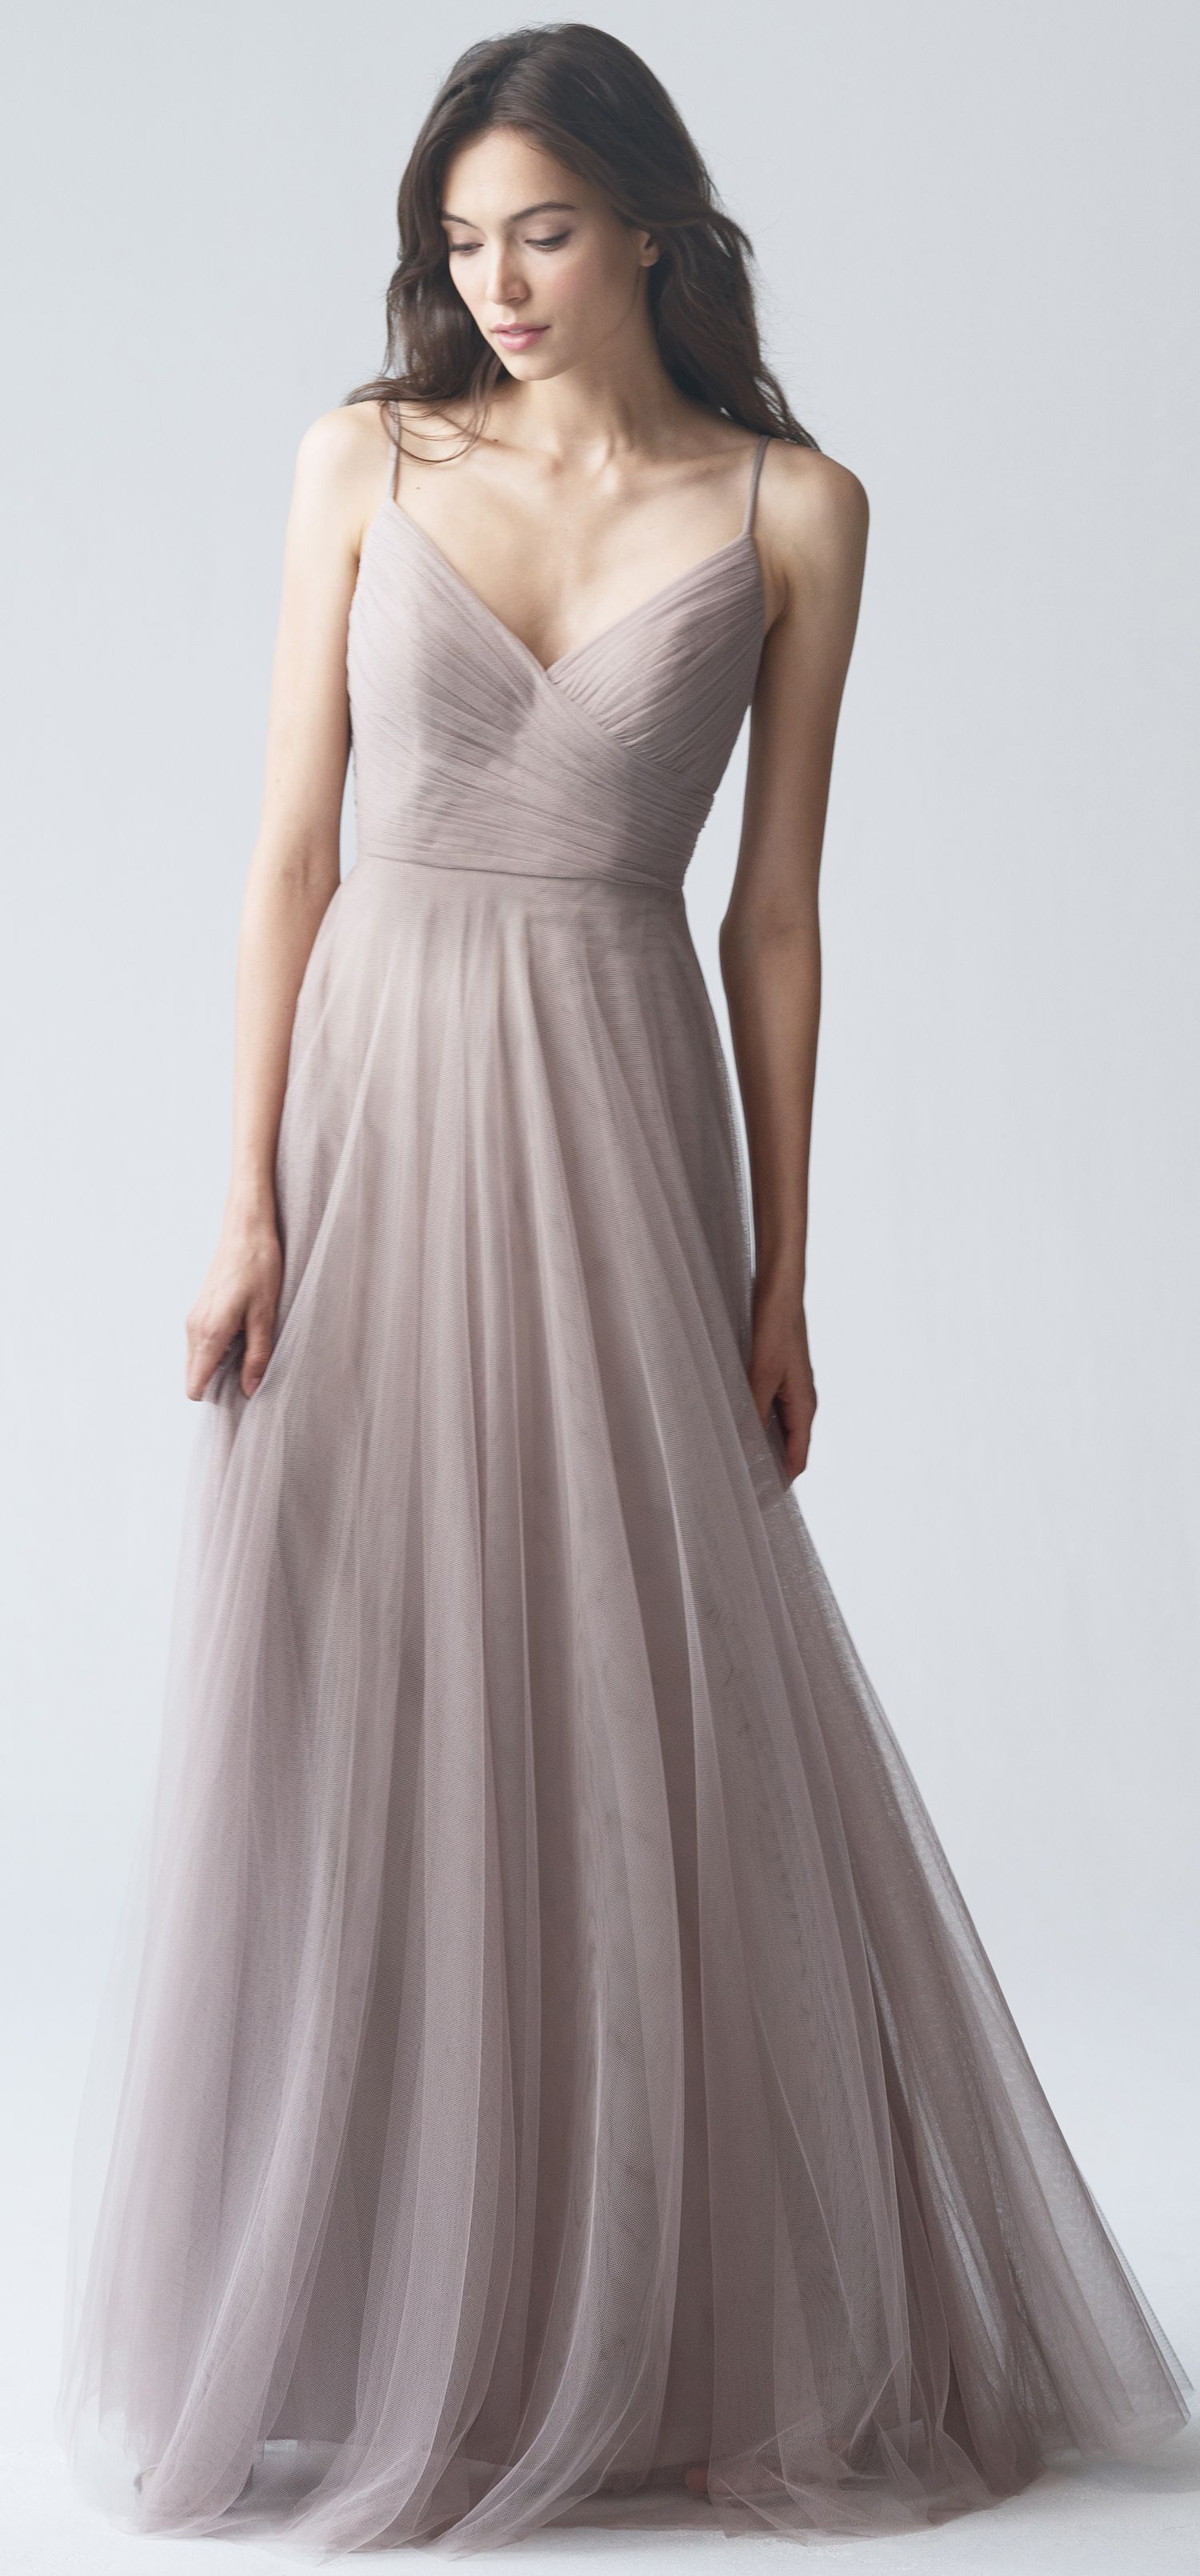 Brielle Bridesmaid Dress in Mink Grey Soft Tulle by Jenny Yoo ... 176e9eb5a97b